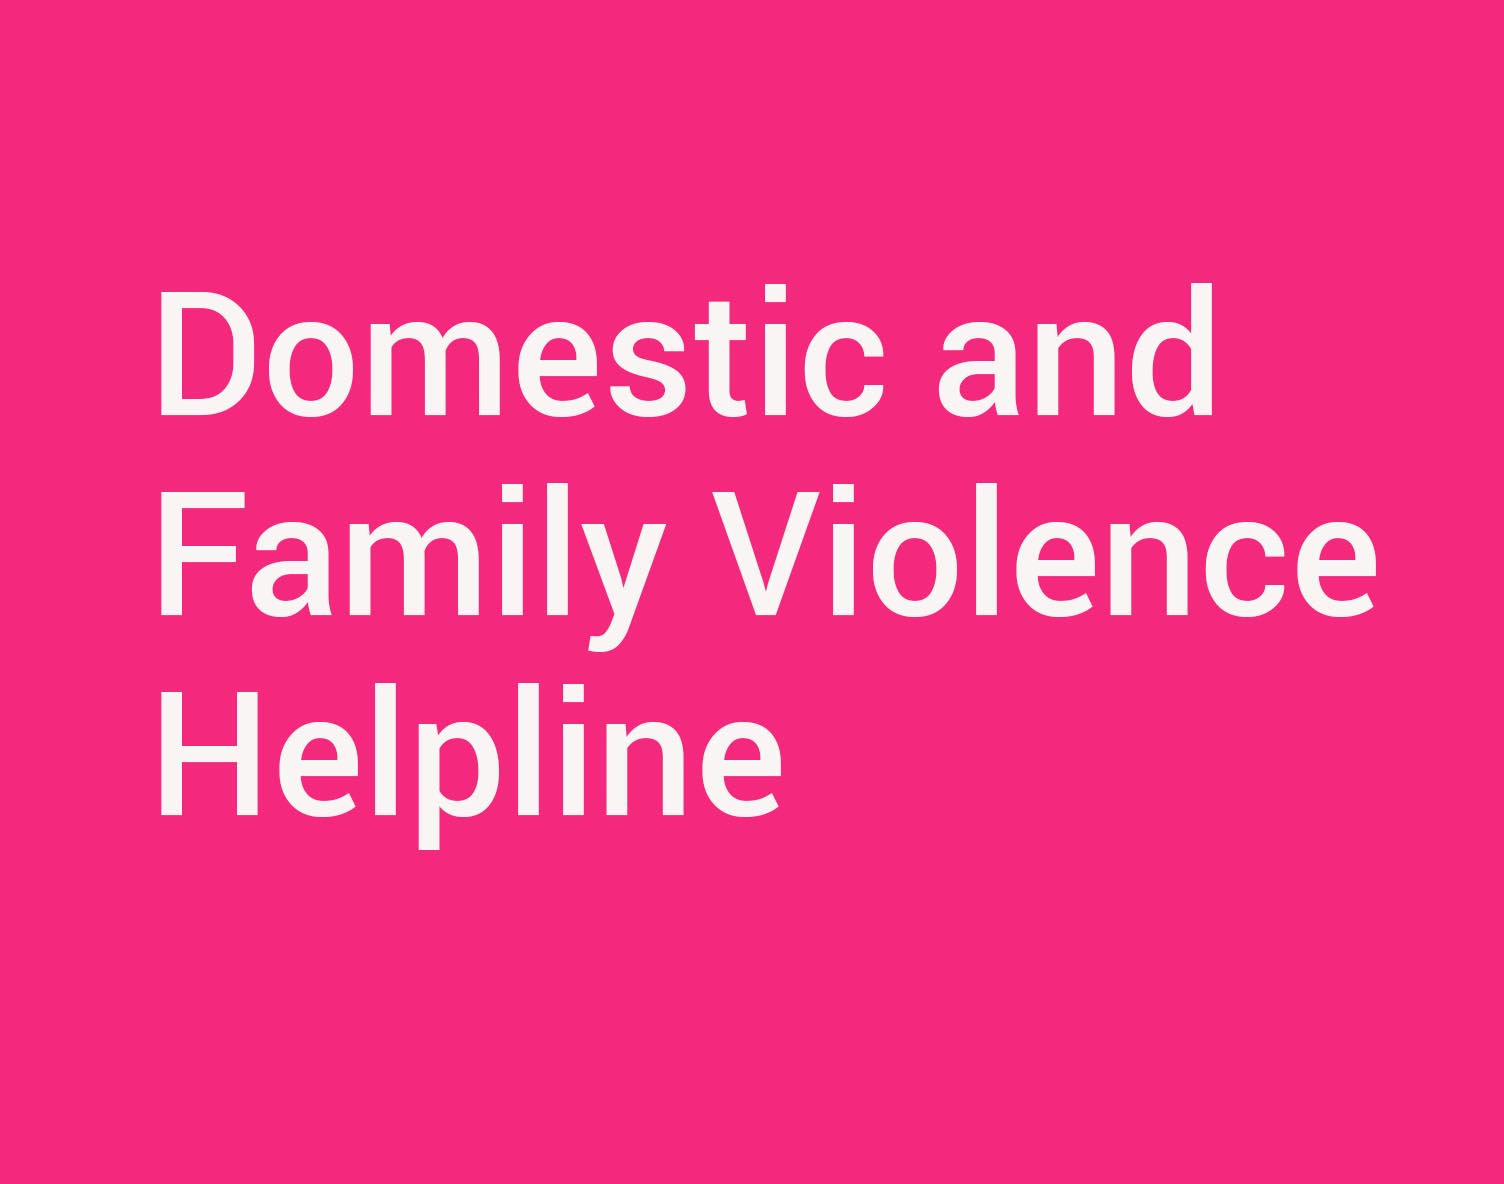 Download flyer: Domestic and family violence helpline (PDF, 609kb)